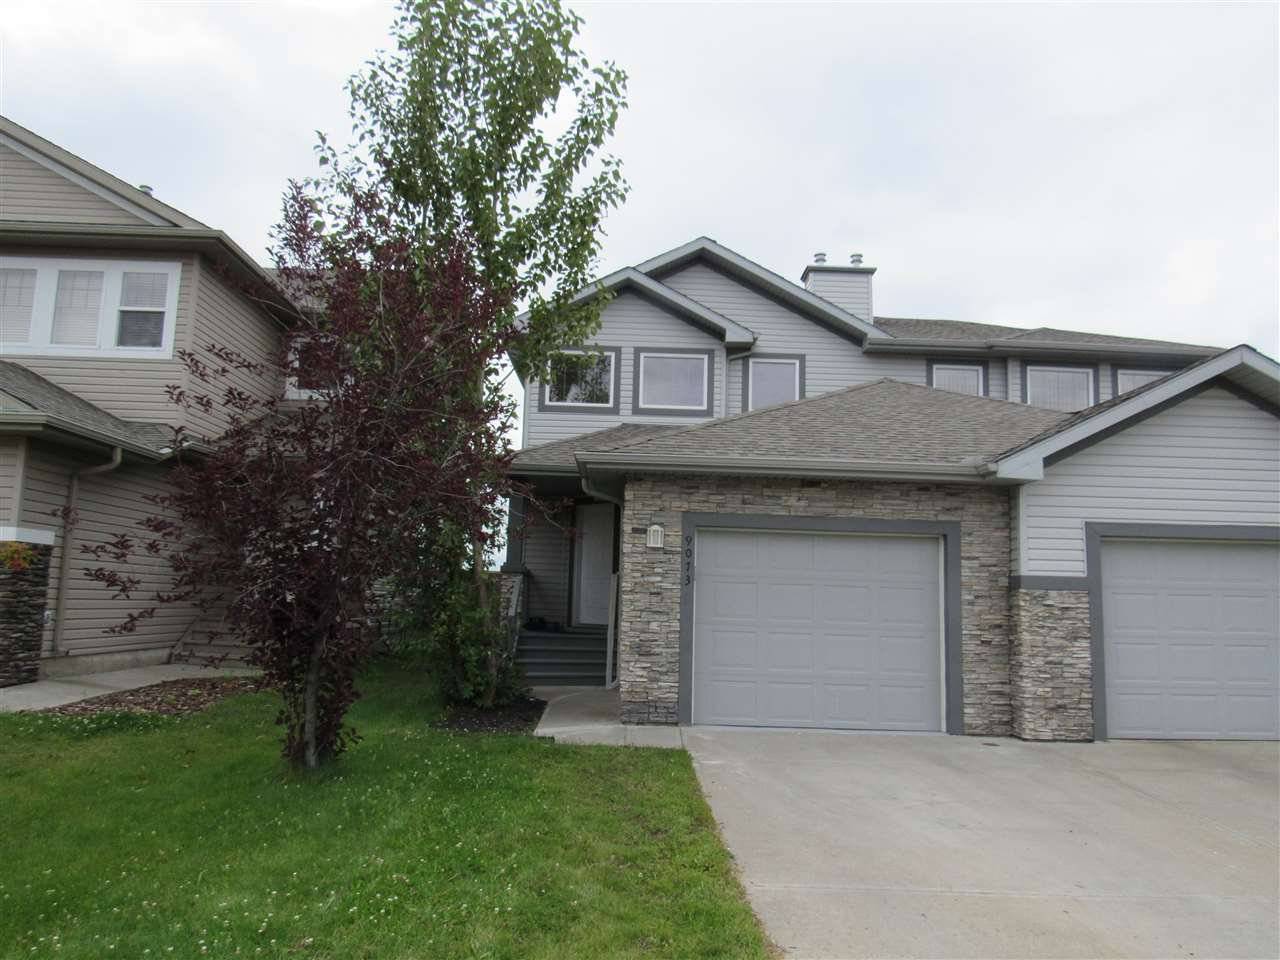 Main Photo: 9073 SCOTT Crescent in Edmonton: Zone 14 House Half Duplex for sale : MLS®# E4170632